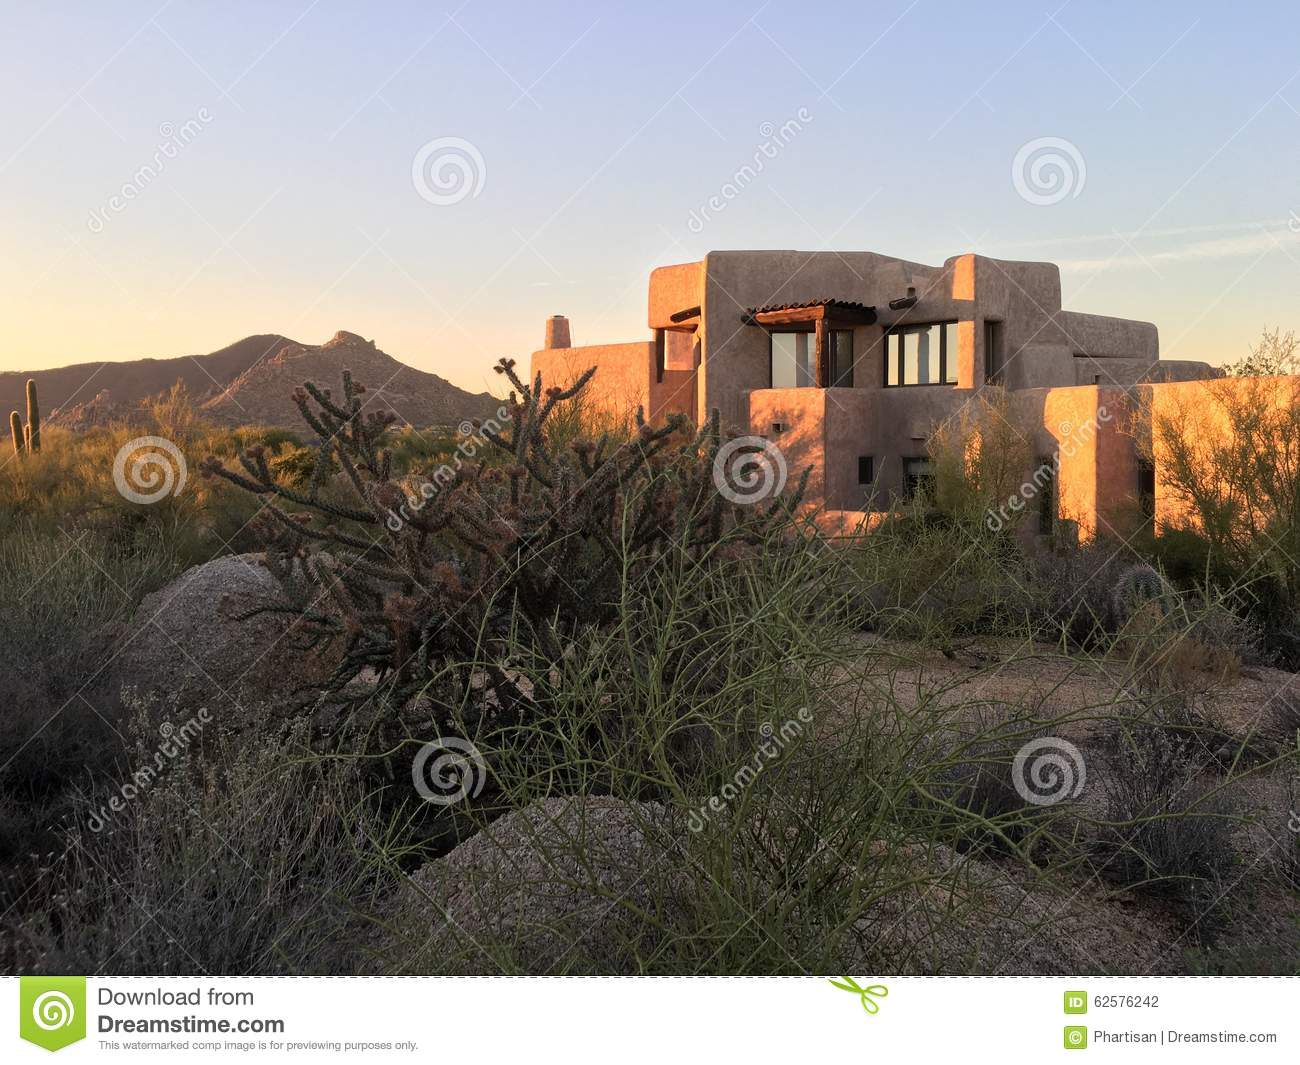 Stock Photo Desert Xeriscape Design New Home Mountain Background Arizona Usa Image62576242 also Garage House additionally Wholehome Window Replacement Bryan Ohio as well Before And After Pretty Home Exteriors further Lifestyle Screens Reinvents The Garage Makeover. on homes with curb appeal